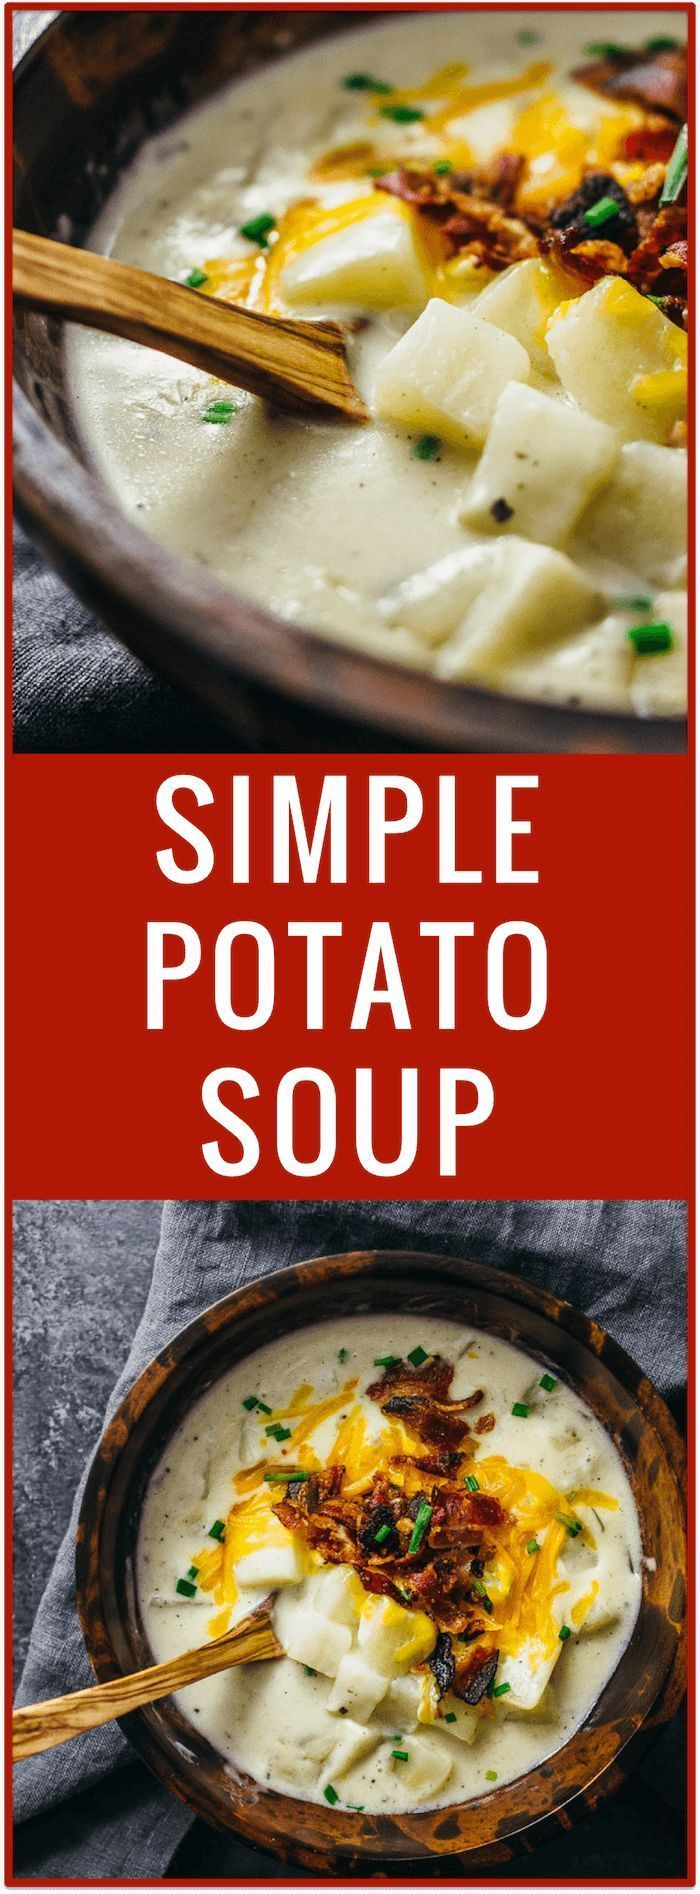 Creamy potato soup with bacon and cheddar   Cheesy potato soup   Simple potato soup   Comfort food   One pot dinner   Easy recipe via /savory_tooth/